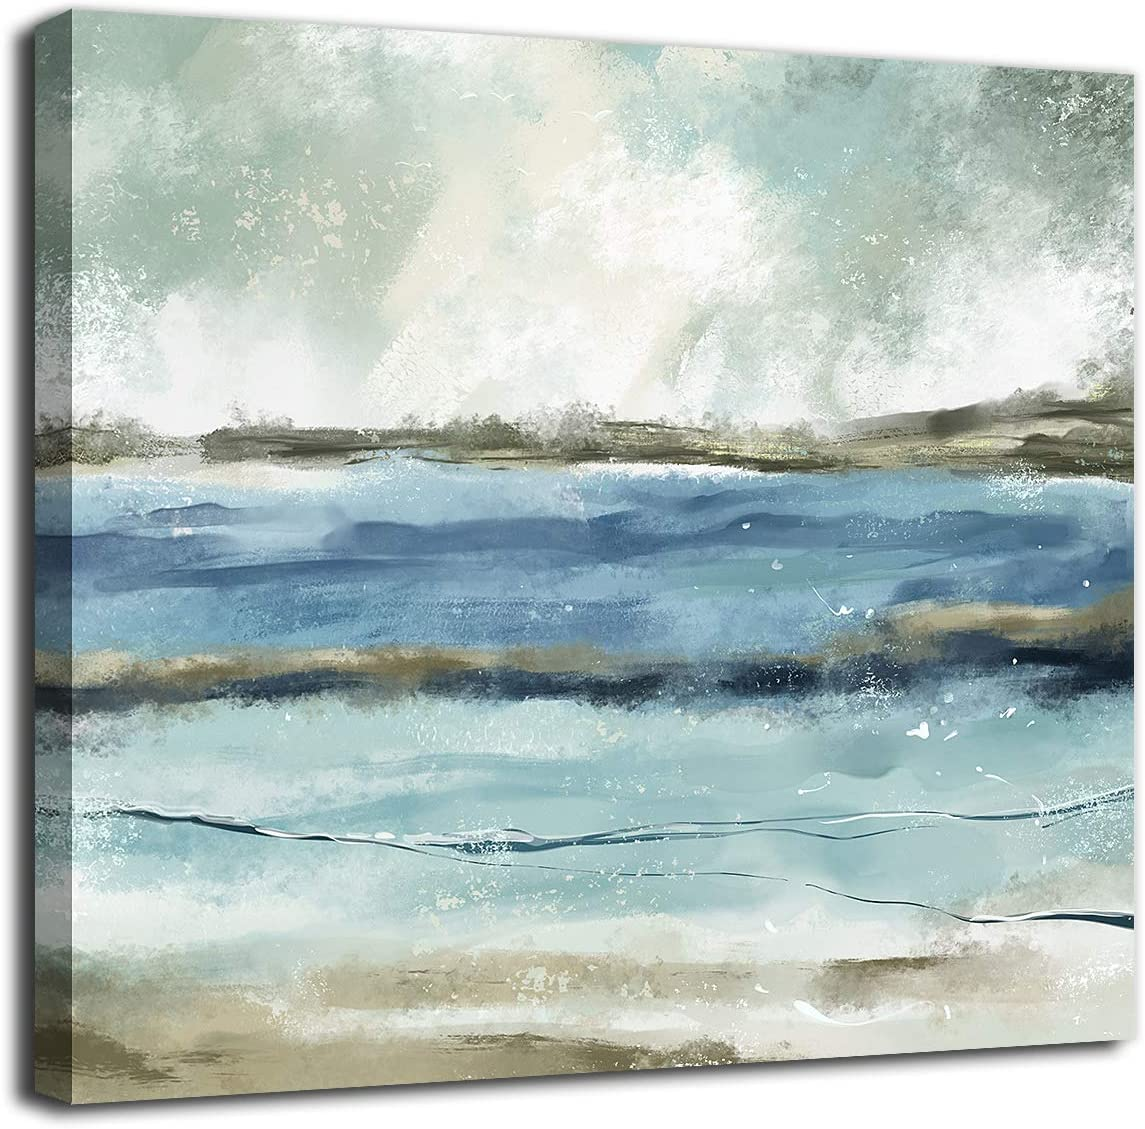 Abstract Ocean Wall Art Grey Canvas Art Modern Canvas Pictures Contemporary Canvas Artwork for Bedroom Living Room Bathroom Kitchen Office Home Wall Decor Framed Ready to Hang 24